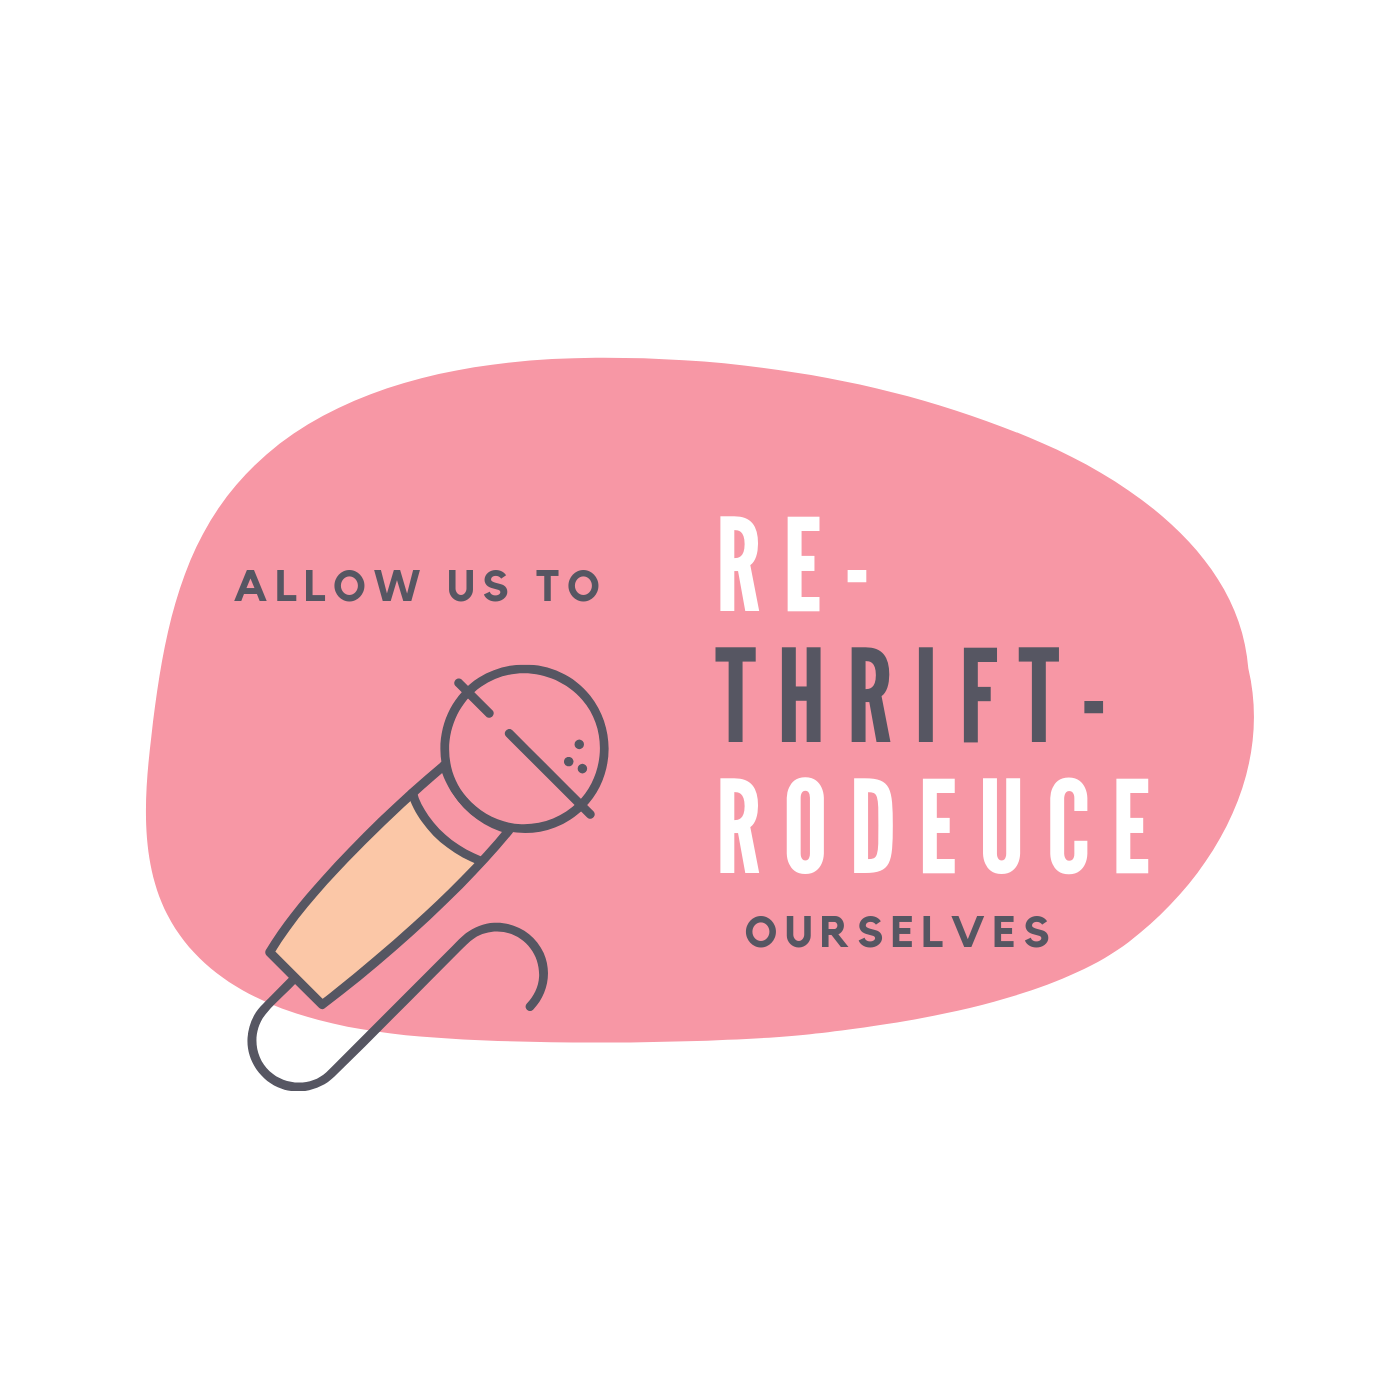 allow us to rethriftrodeuce ourselves logo